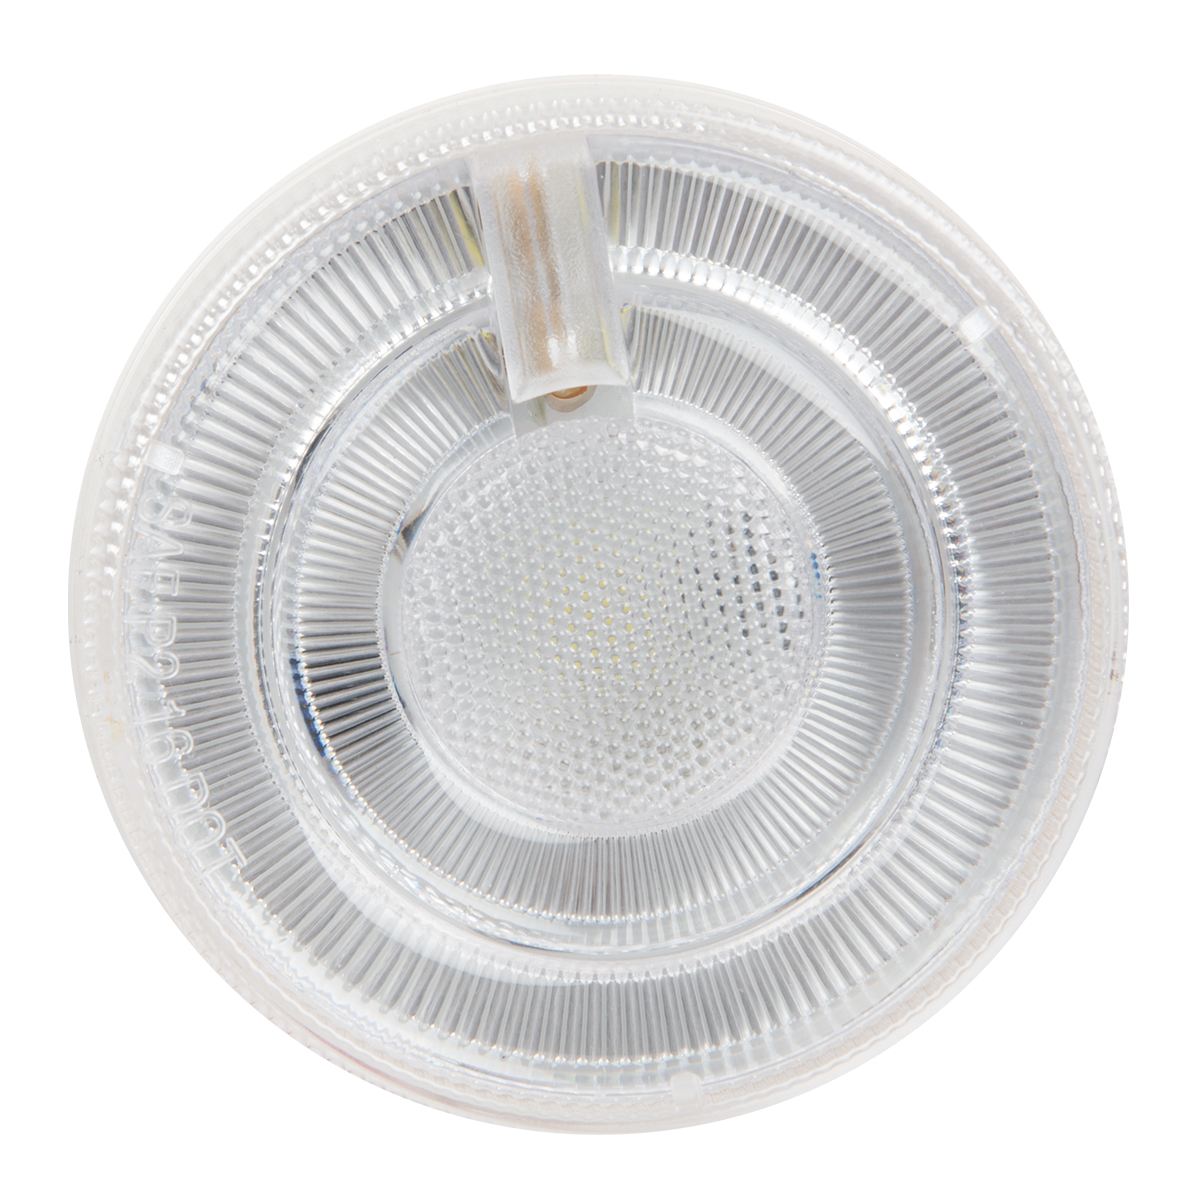 "2-1/2"" Prime LED Marker Light in Clear Lens"